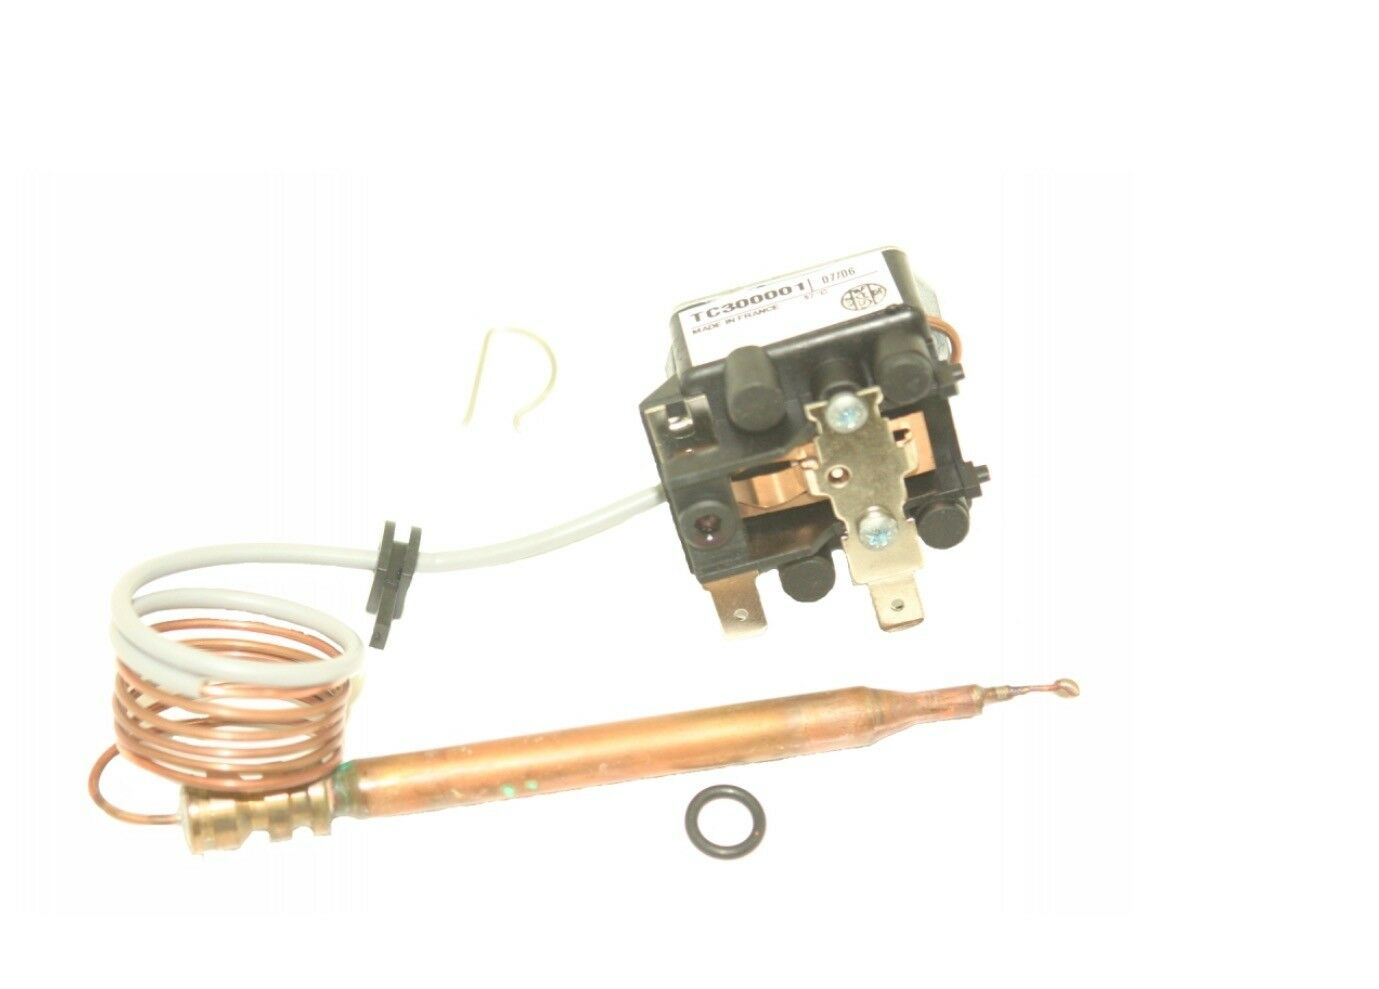 HVAC Parts & Accessories Heating, Cooling & Air Chaffoteaux Britony